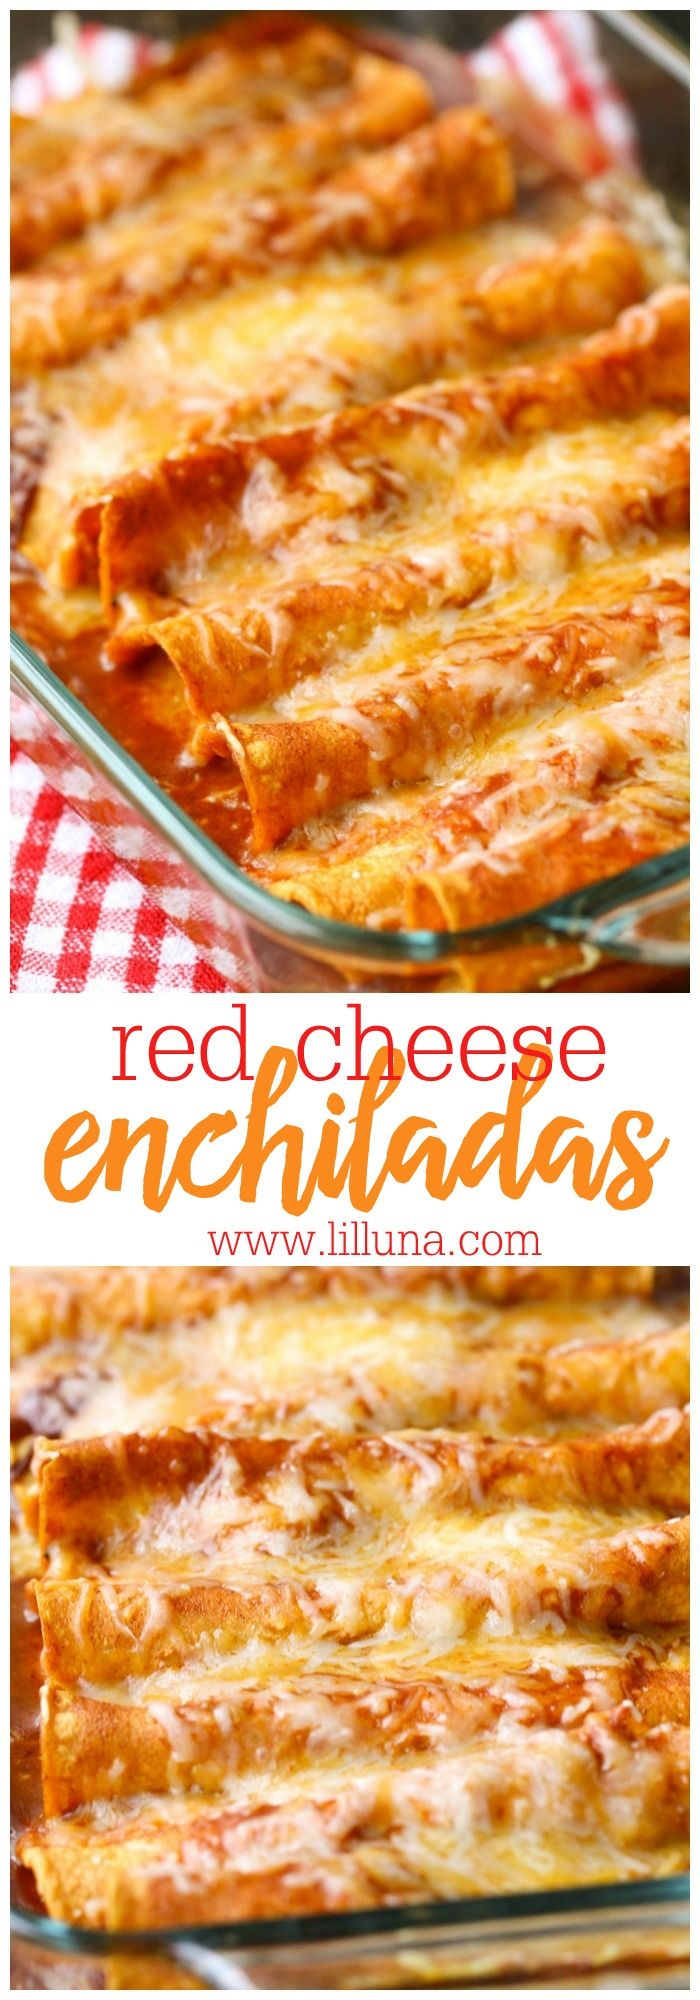 Restaurant-Style Red Cheese Enchiladas - an old family favorite recipe that is simply the best. Corn tortillas filled with cheese, tomato sauce, chile puree, salt & garlic pepper and topped with more cheese!